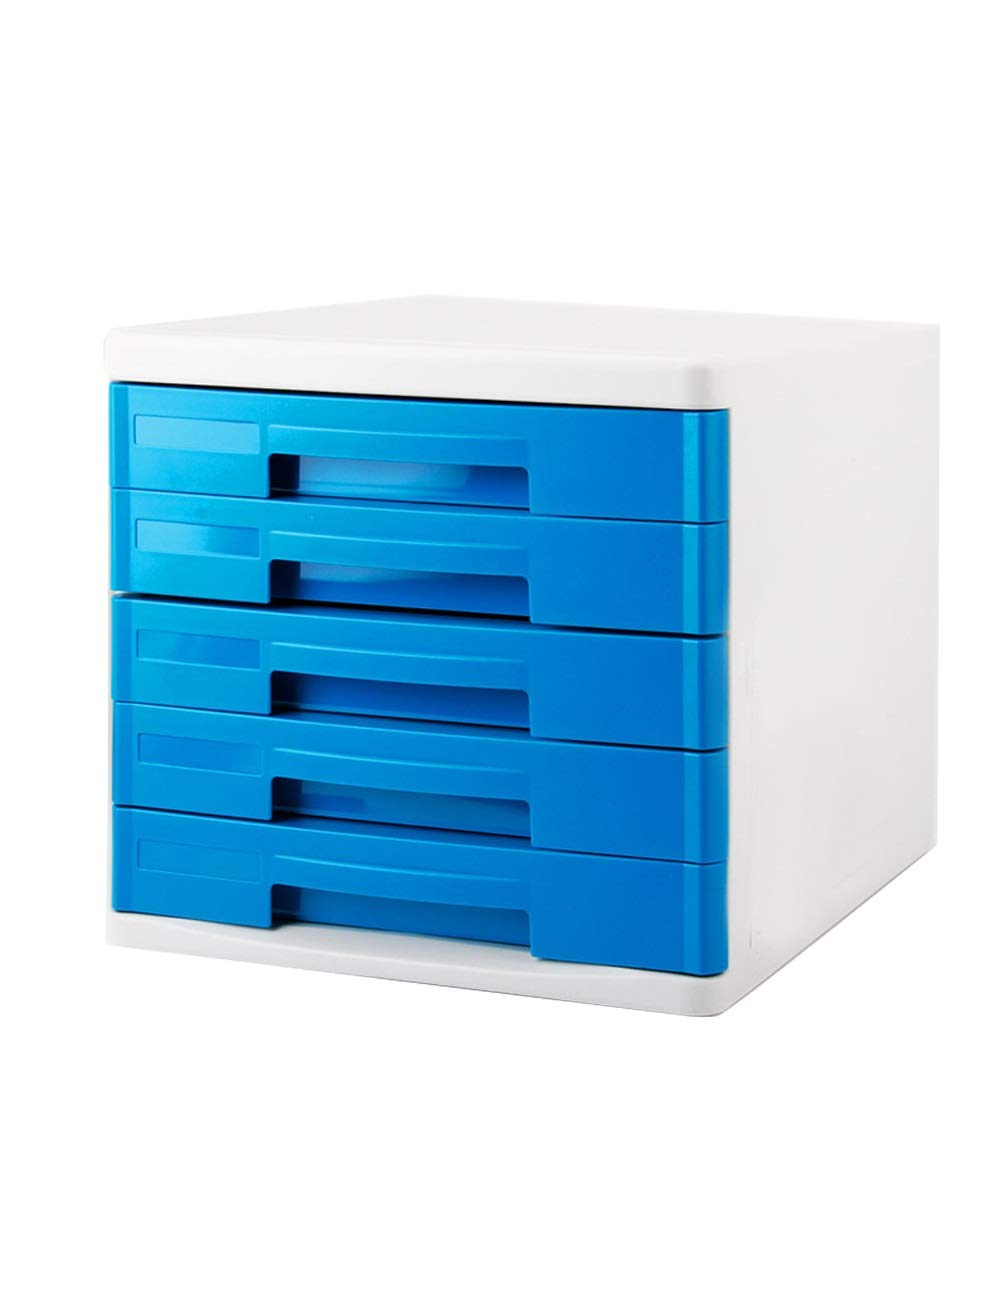 File Cabinet Office Desktop A4 Plastic Data Cabinet Drawer Desktop Cabinet File Storage Cabinet Storage Box (Design: 5 Drawers) Filing cabinets